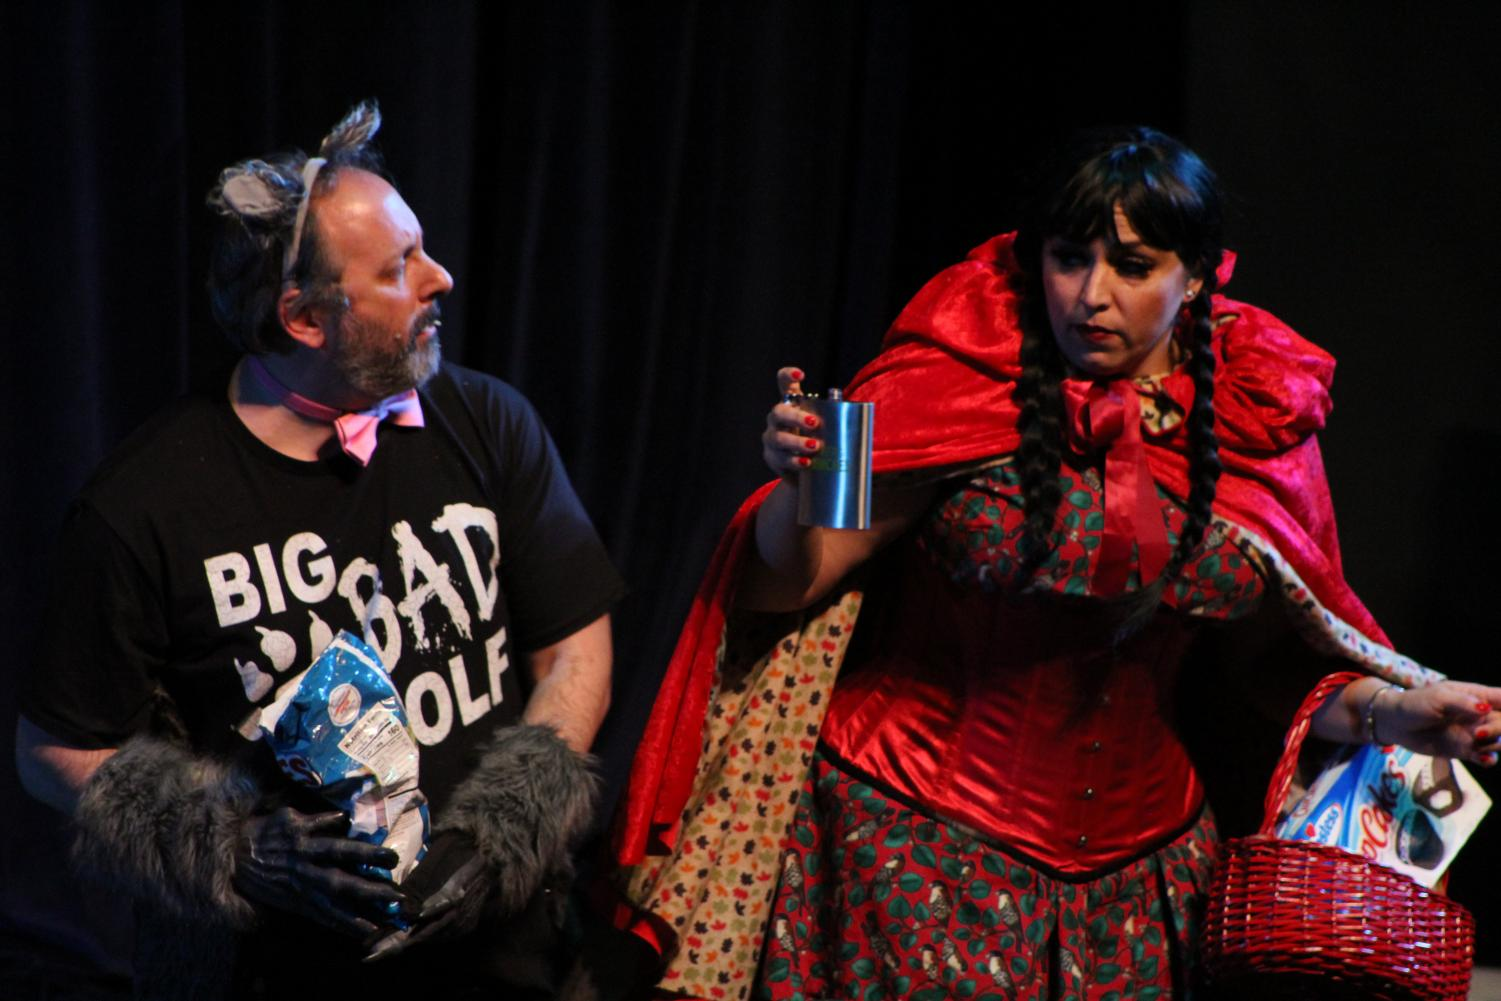 Liberal arts Dean Jason Berner (left) as the Big Bad Wolf is offered alcohol by Little Red Riding Hood played by Theater Staging Specialist Courtney Johnson during